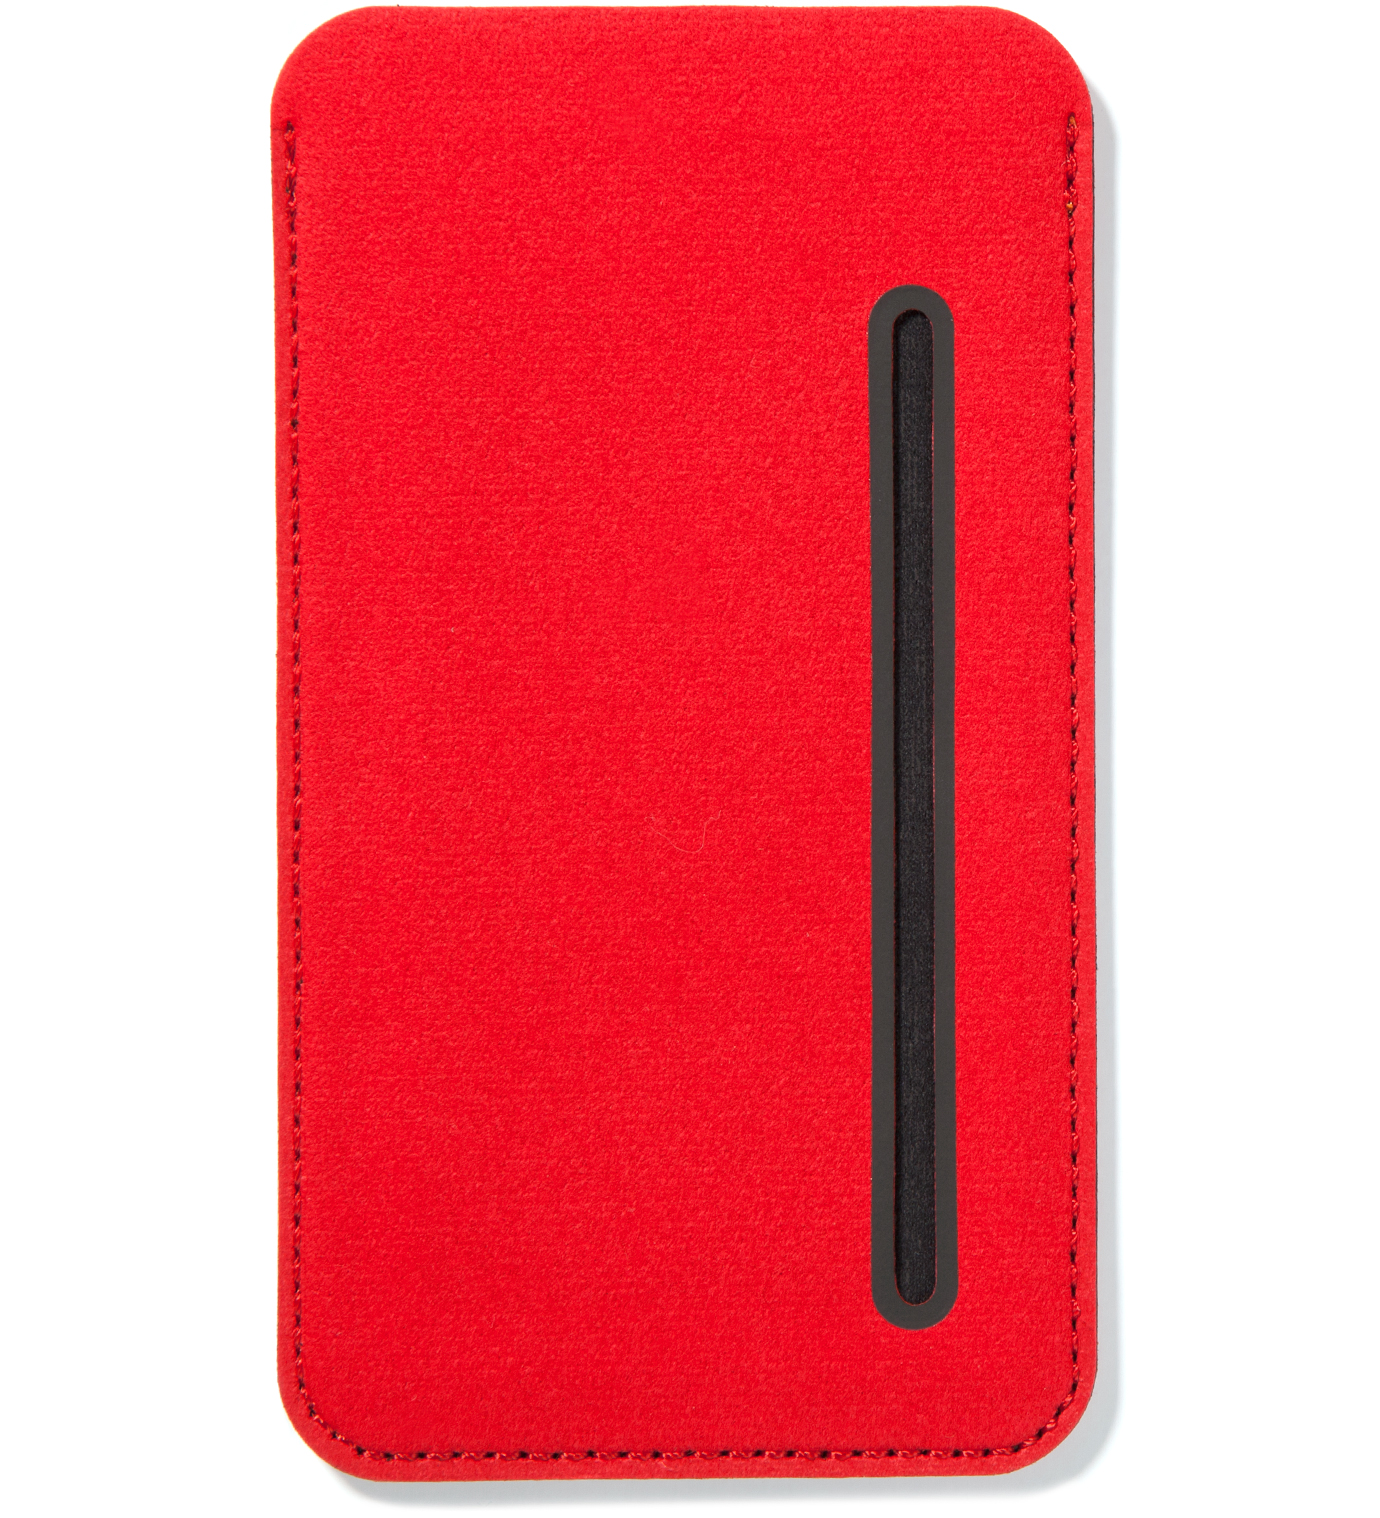 Côte&Ciel Carmine Red Card Pouch for iPhone 5